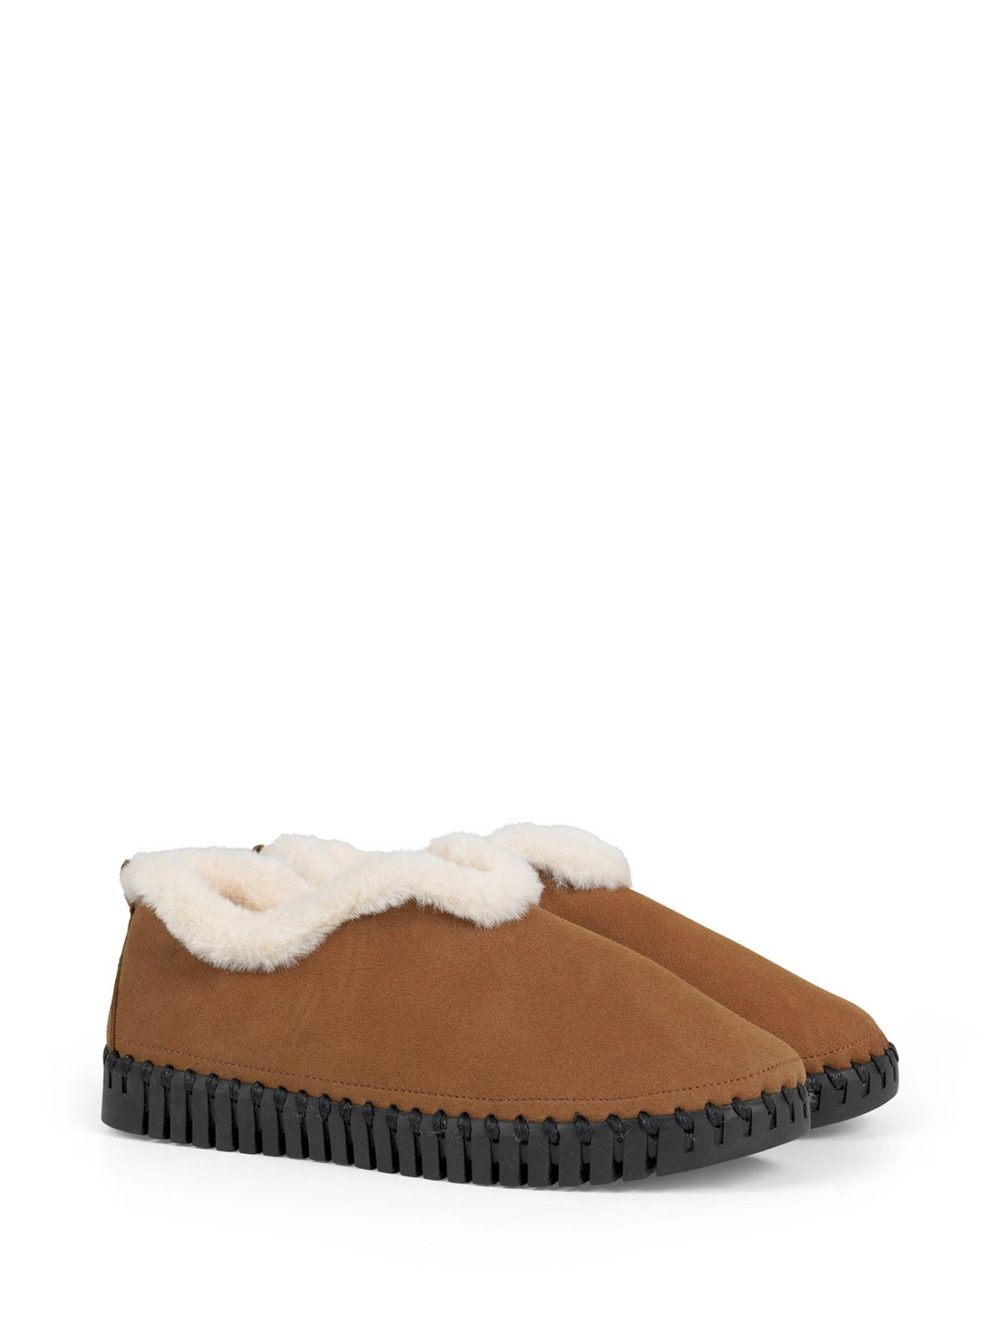 Home Slippers Ilse Jacobsen Women's Clothing